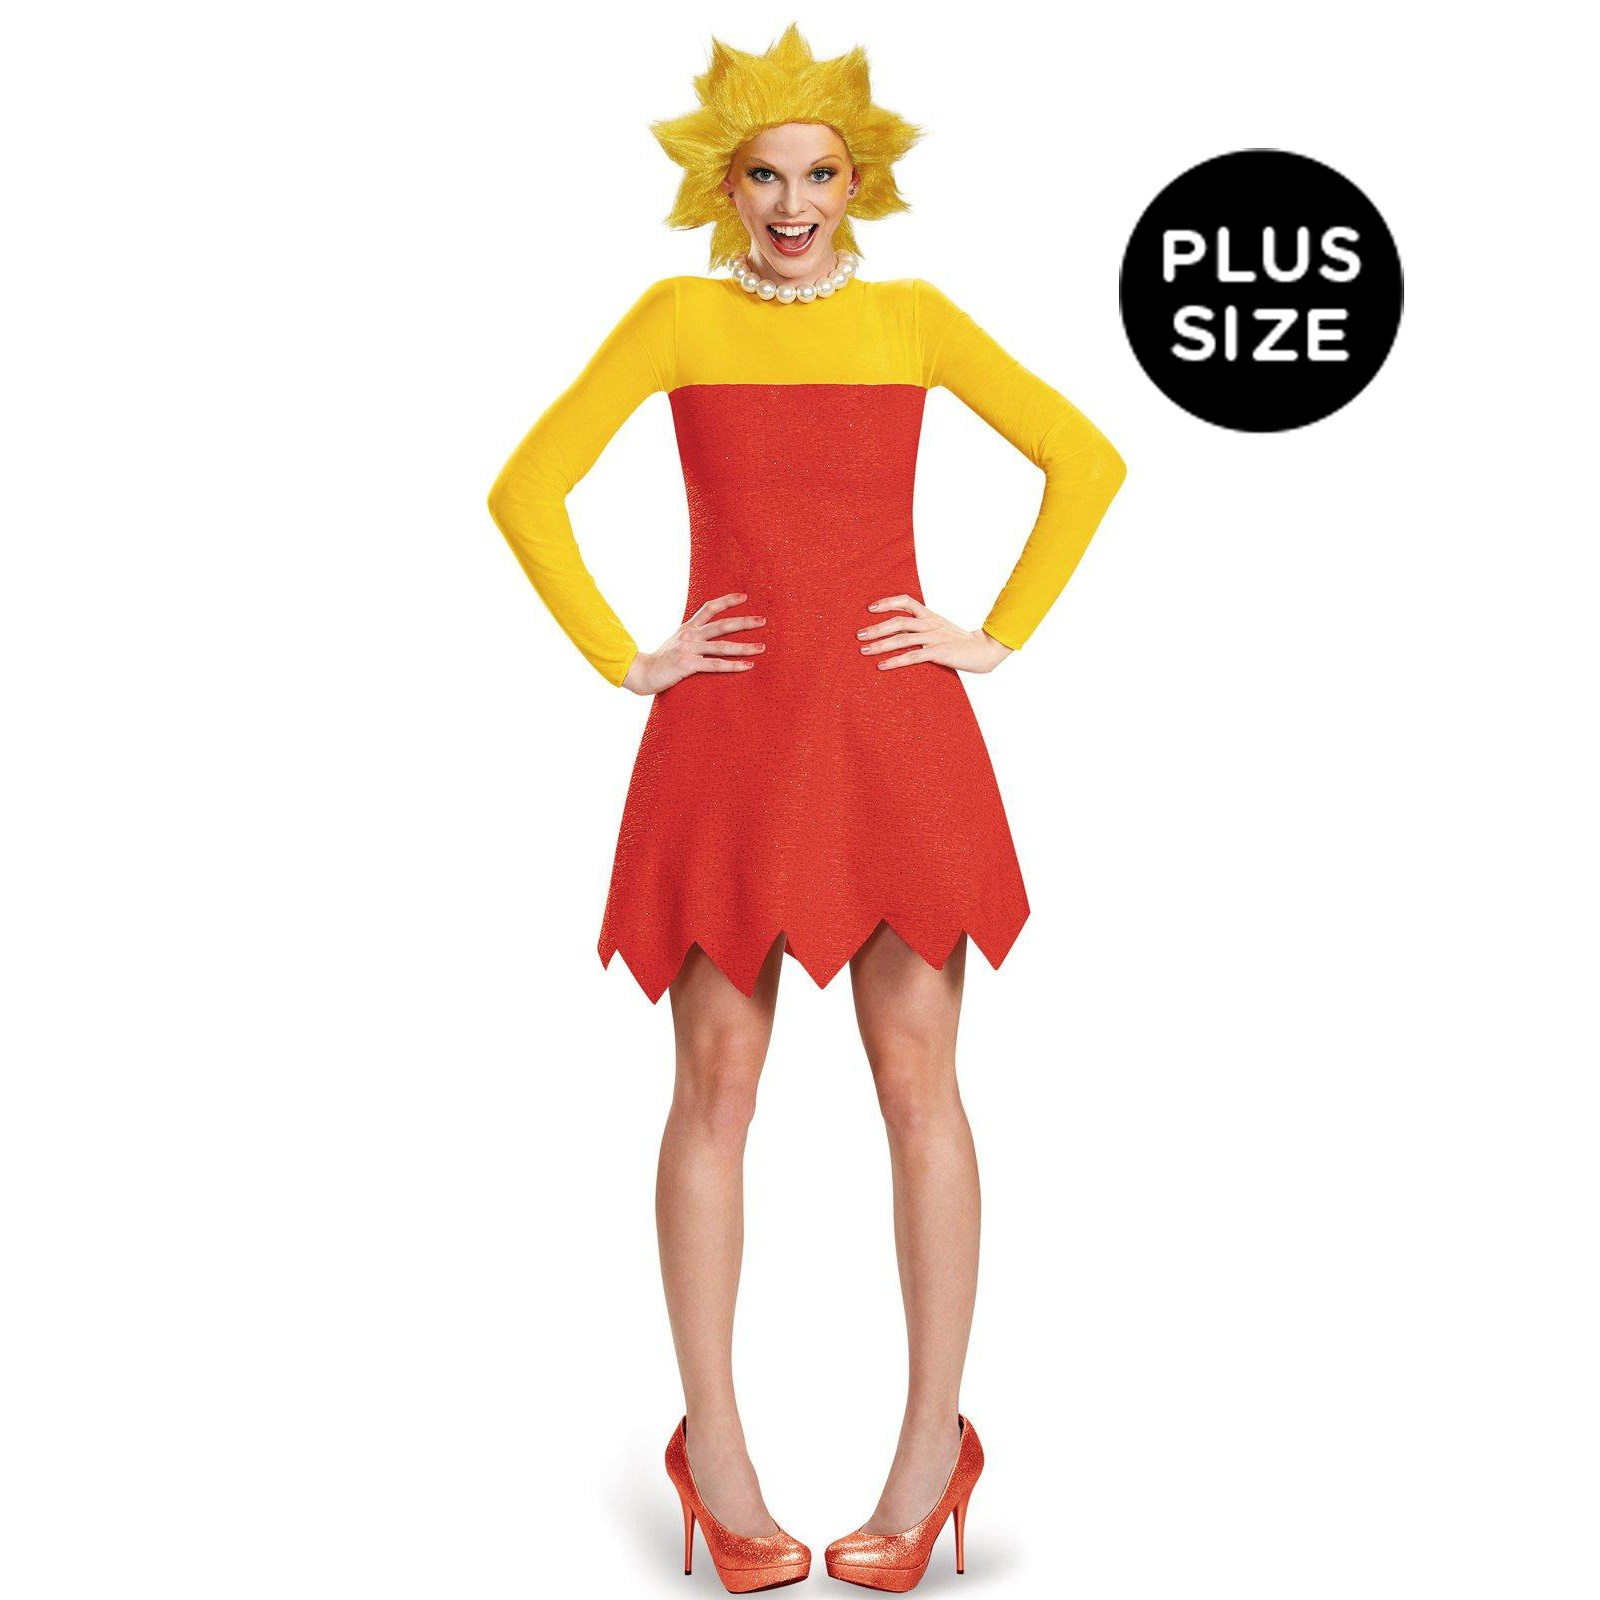 The Simpsons: Womens Deluxe Plus Size Lisa Costume | BuyCostumes.com